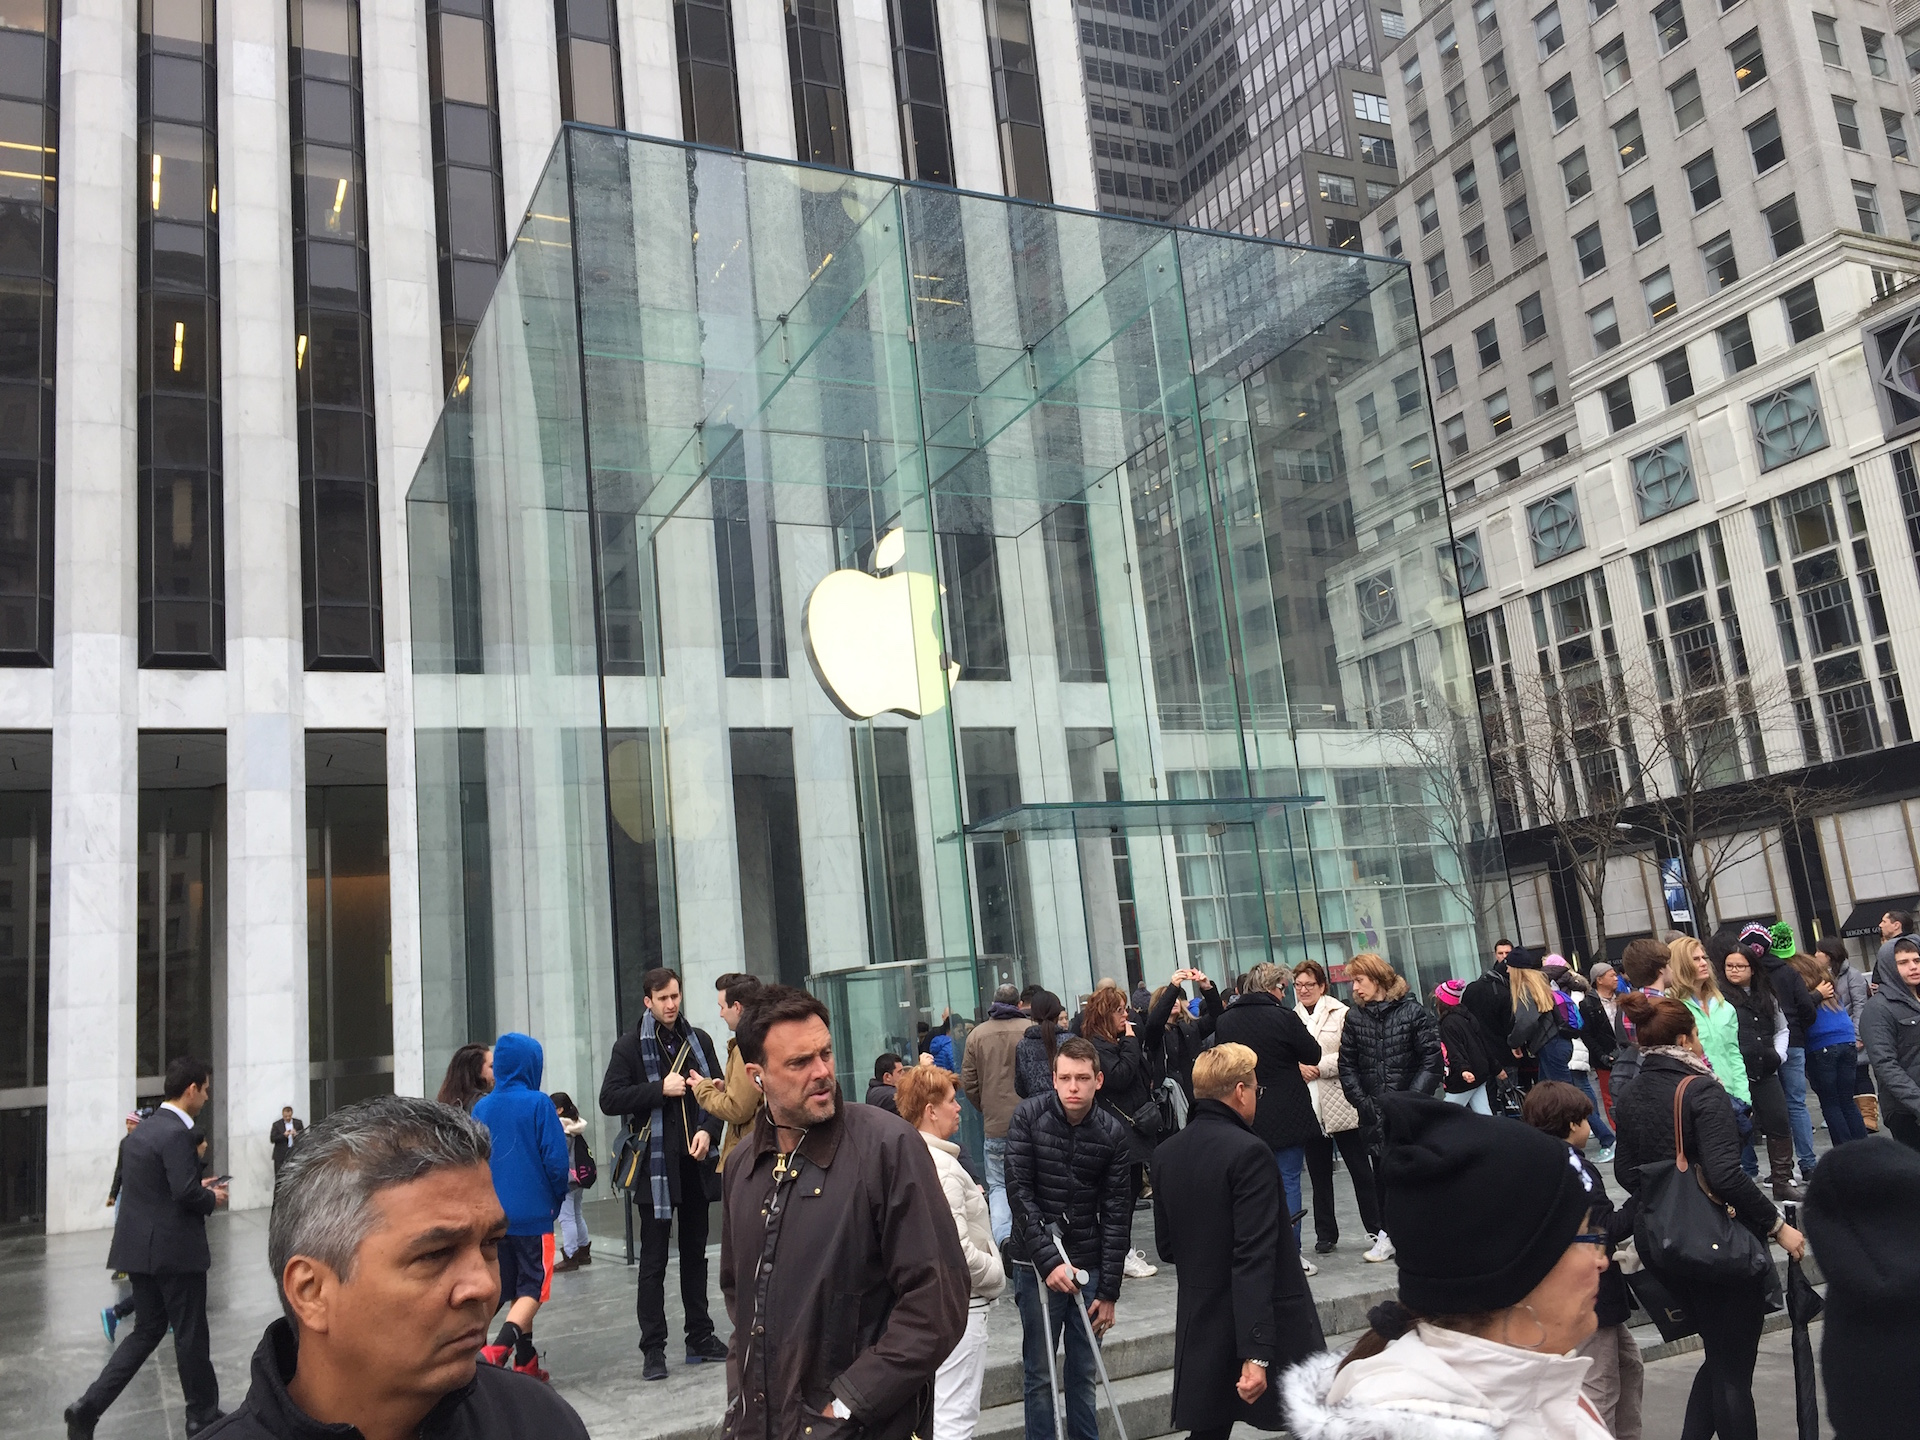 Apple's flagship Fifth Avenue store offers Edition demos. Most other stores in the area don't.